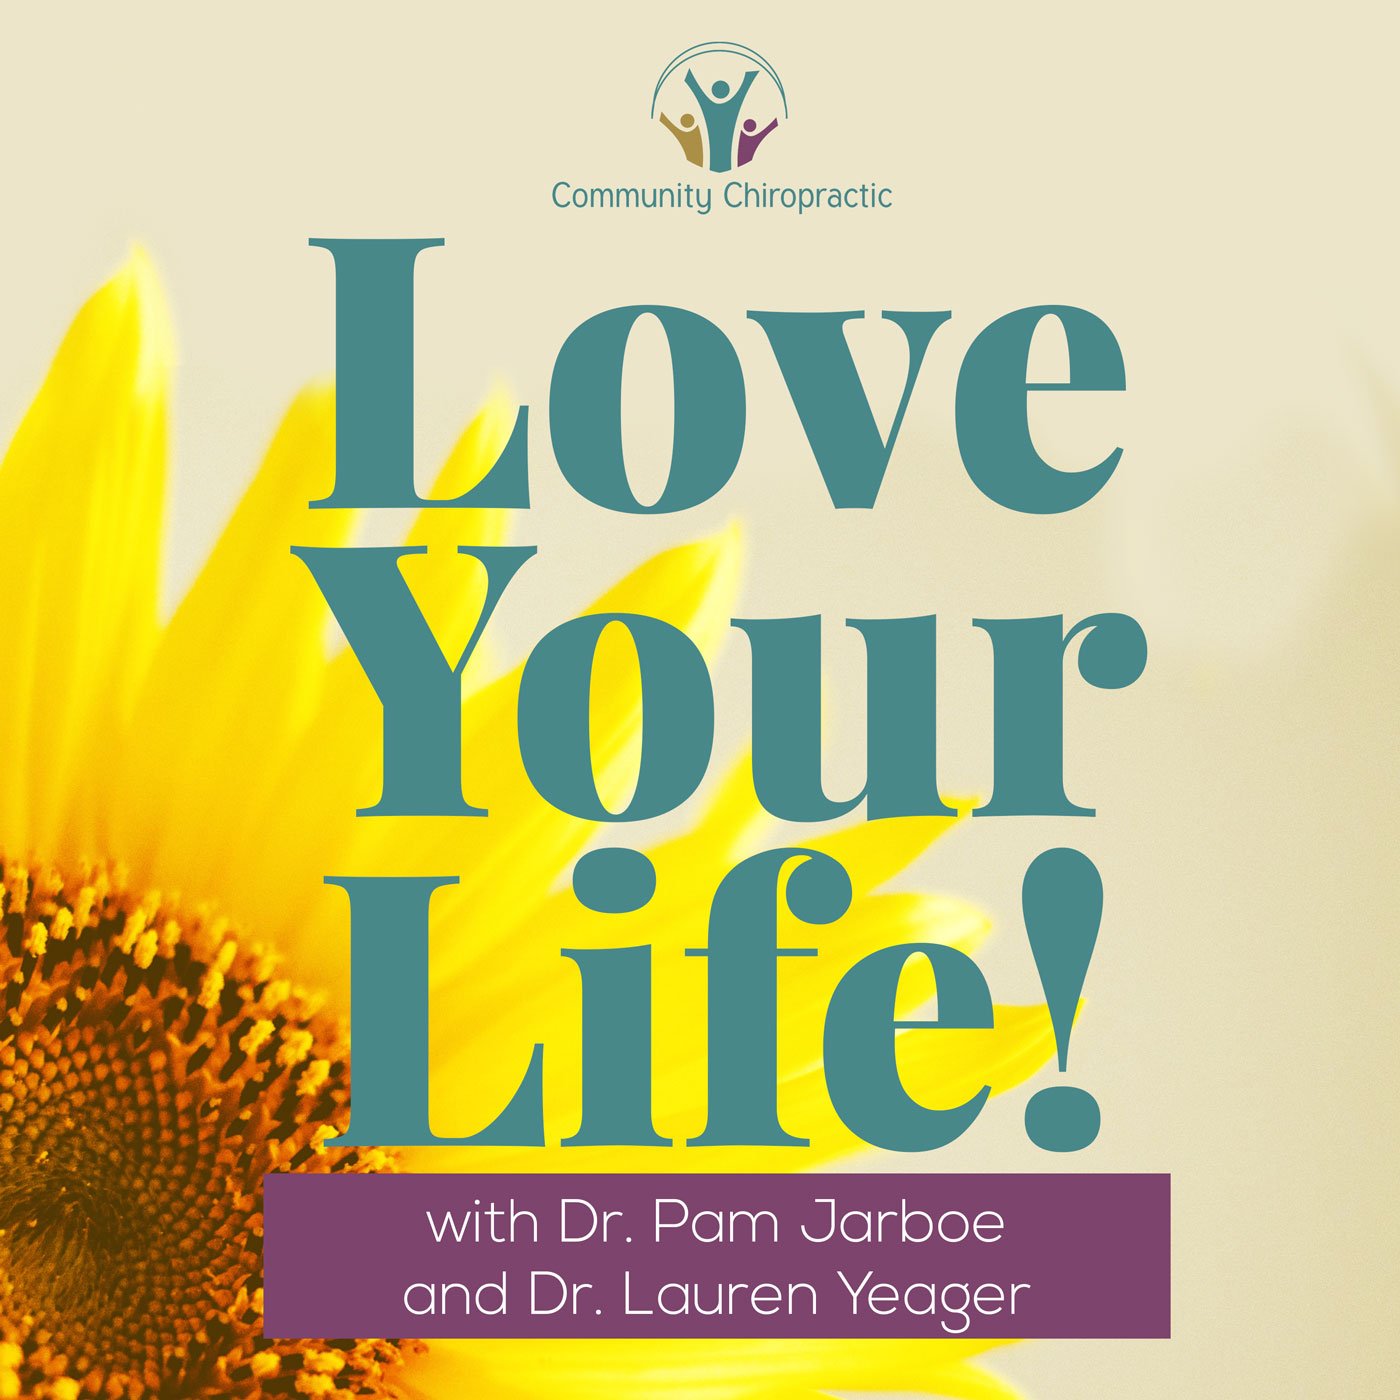 The Love Your Life Movement